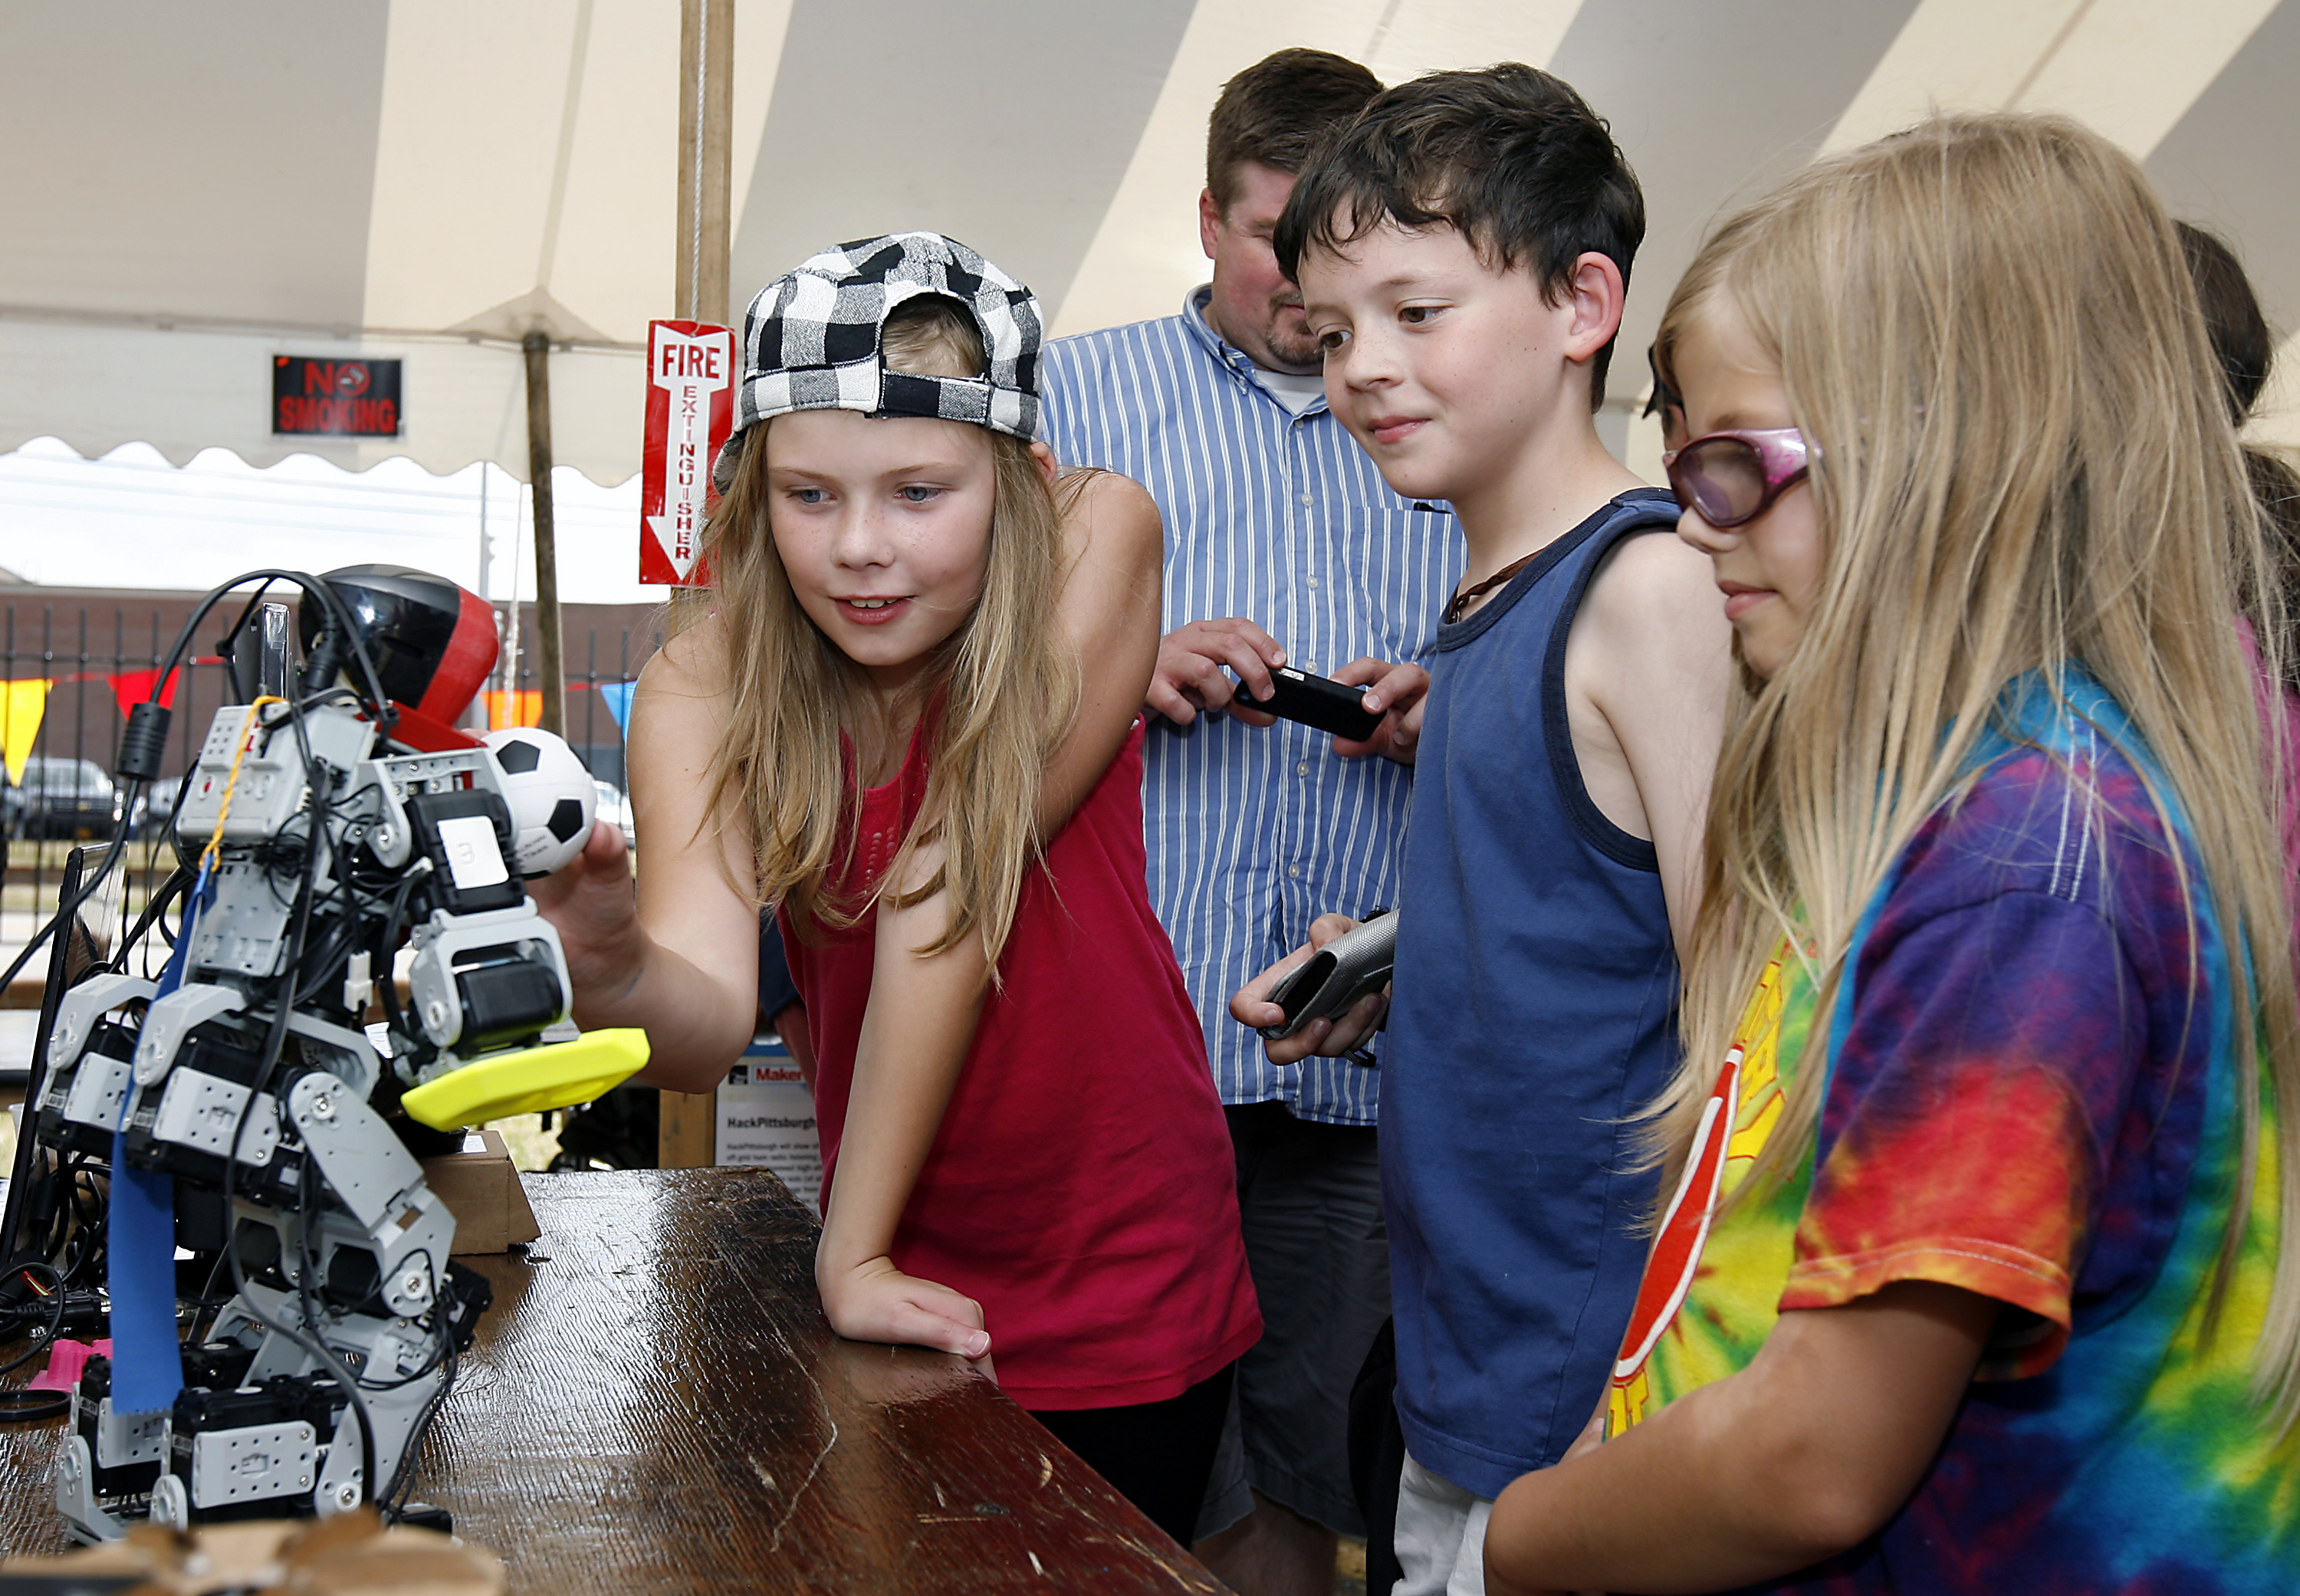 Maker Faire Detroit at The Henry Ford in Dearborn, Mich. Sunday, July 29, 2012. Gary Malerba for The Henry Ford